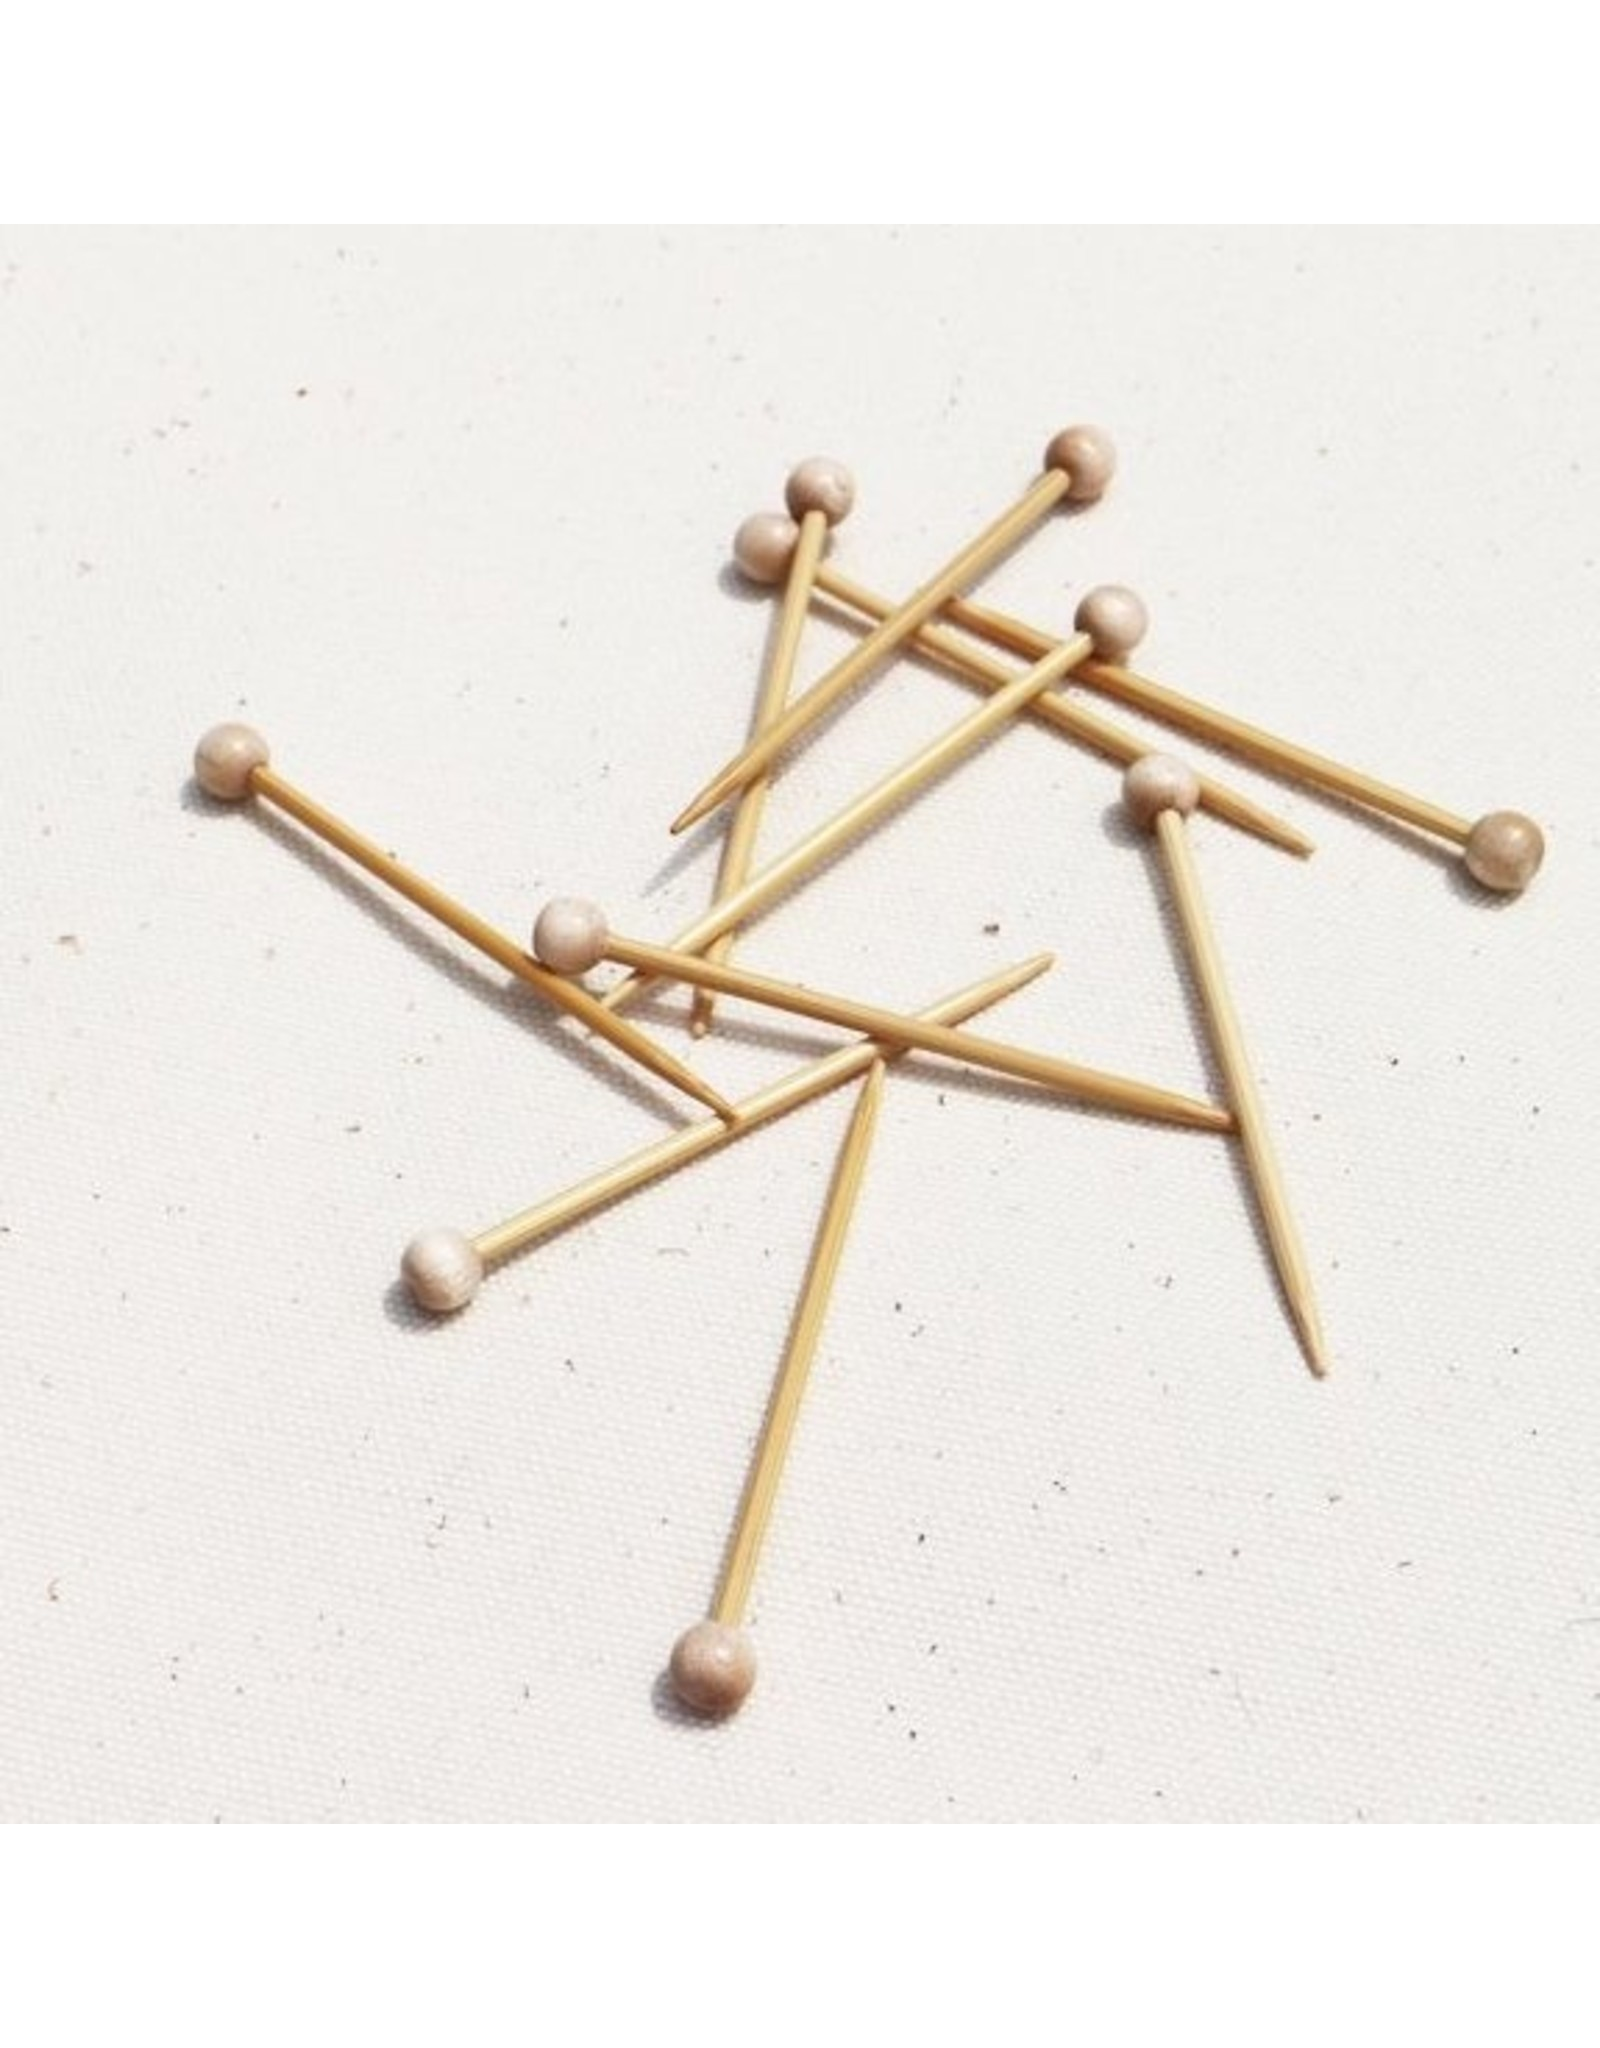 Crystal Palace Bamboo Crystal Palace Bamboo Marking Pins